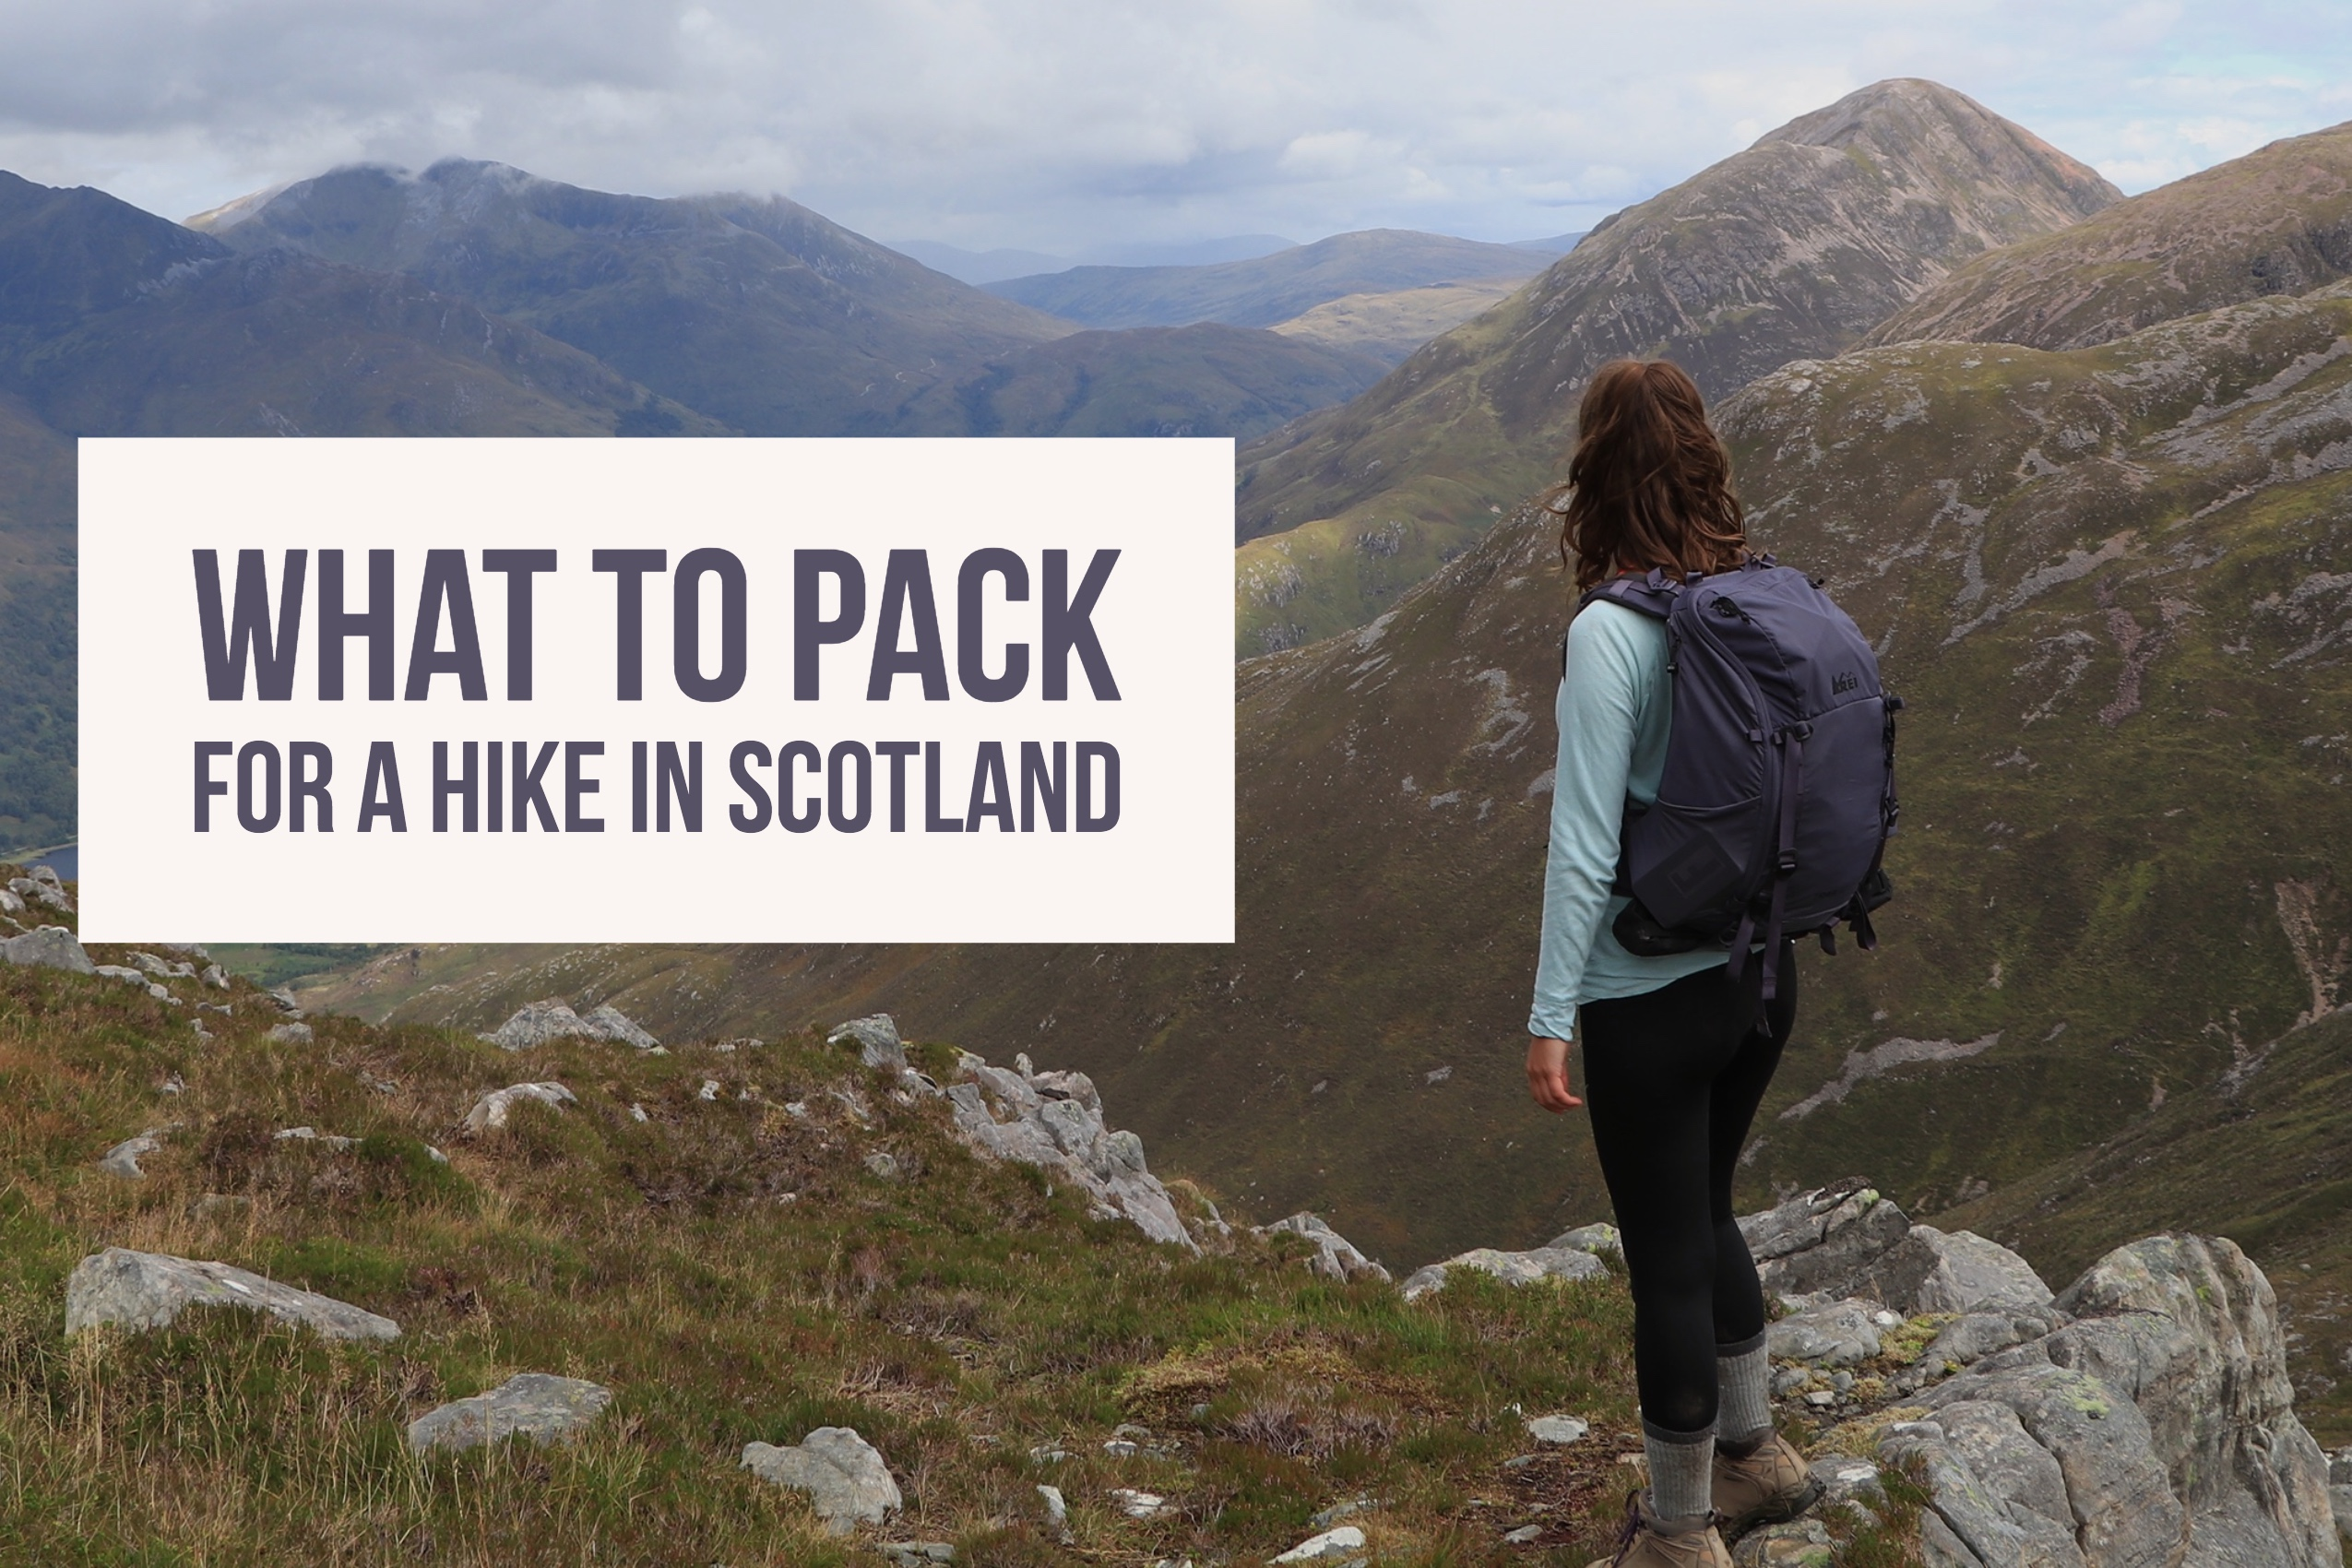 What to pack for a hike in Scotland